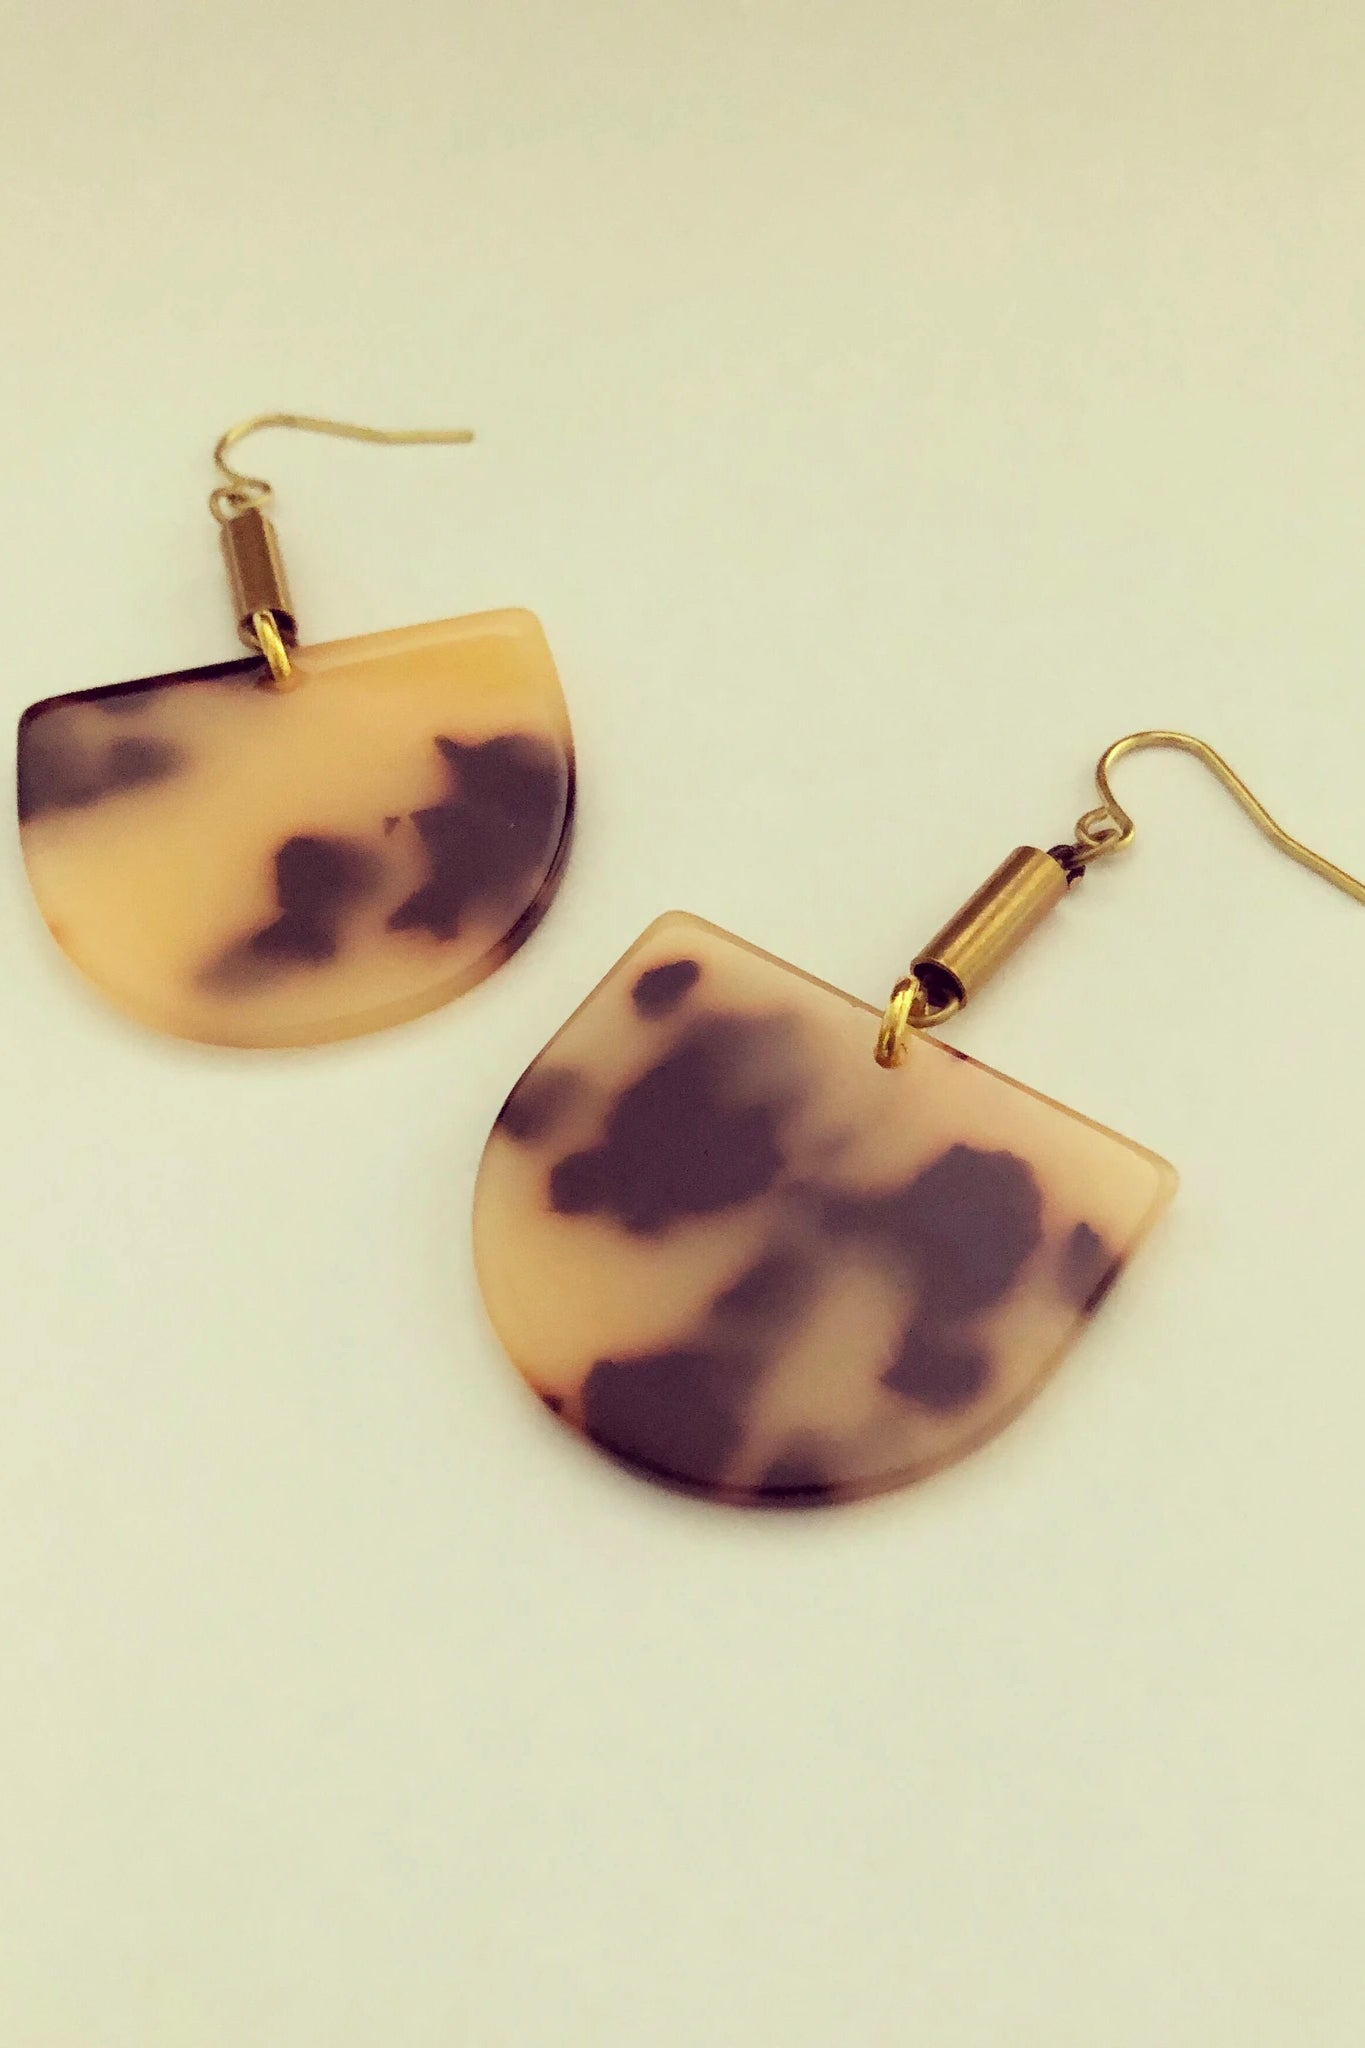 Ruve earrings by Darlings of Denmark; Acrylic, tortoise shell, semi-circle dangle earrings with short brass tube; raw brass and acrylic; flat lay